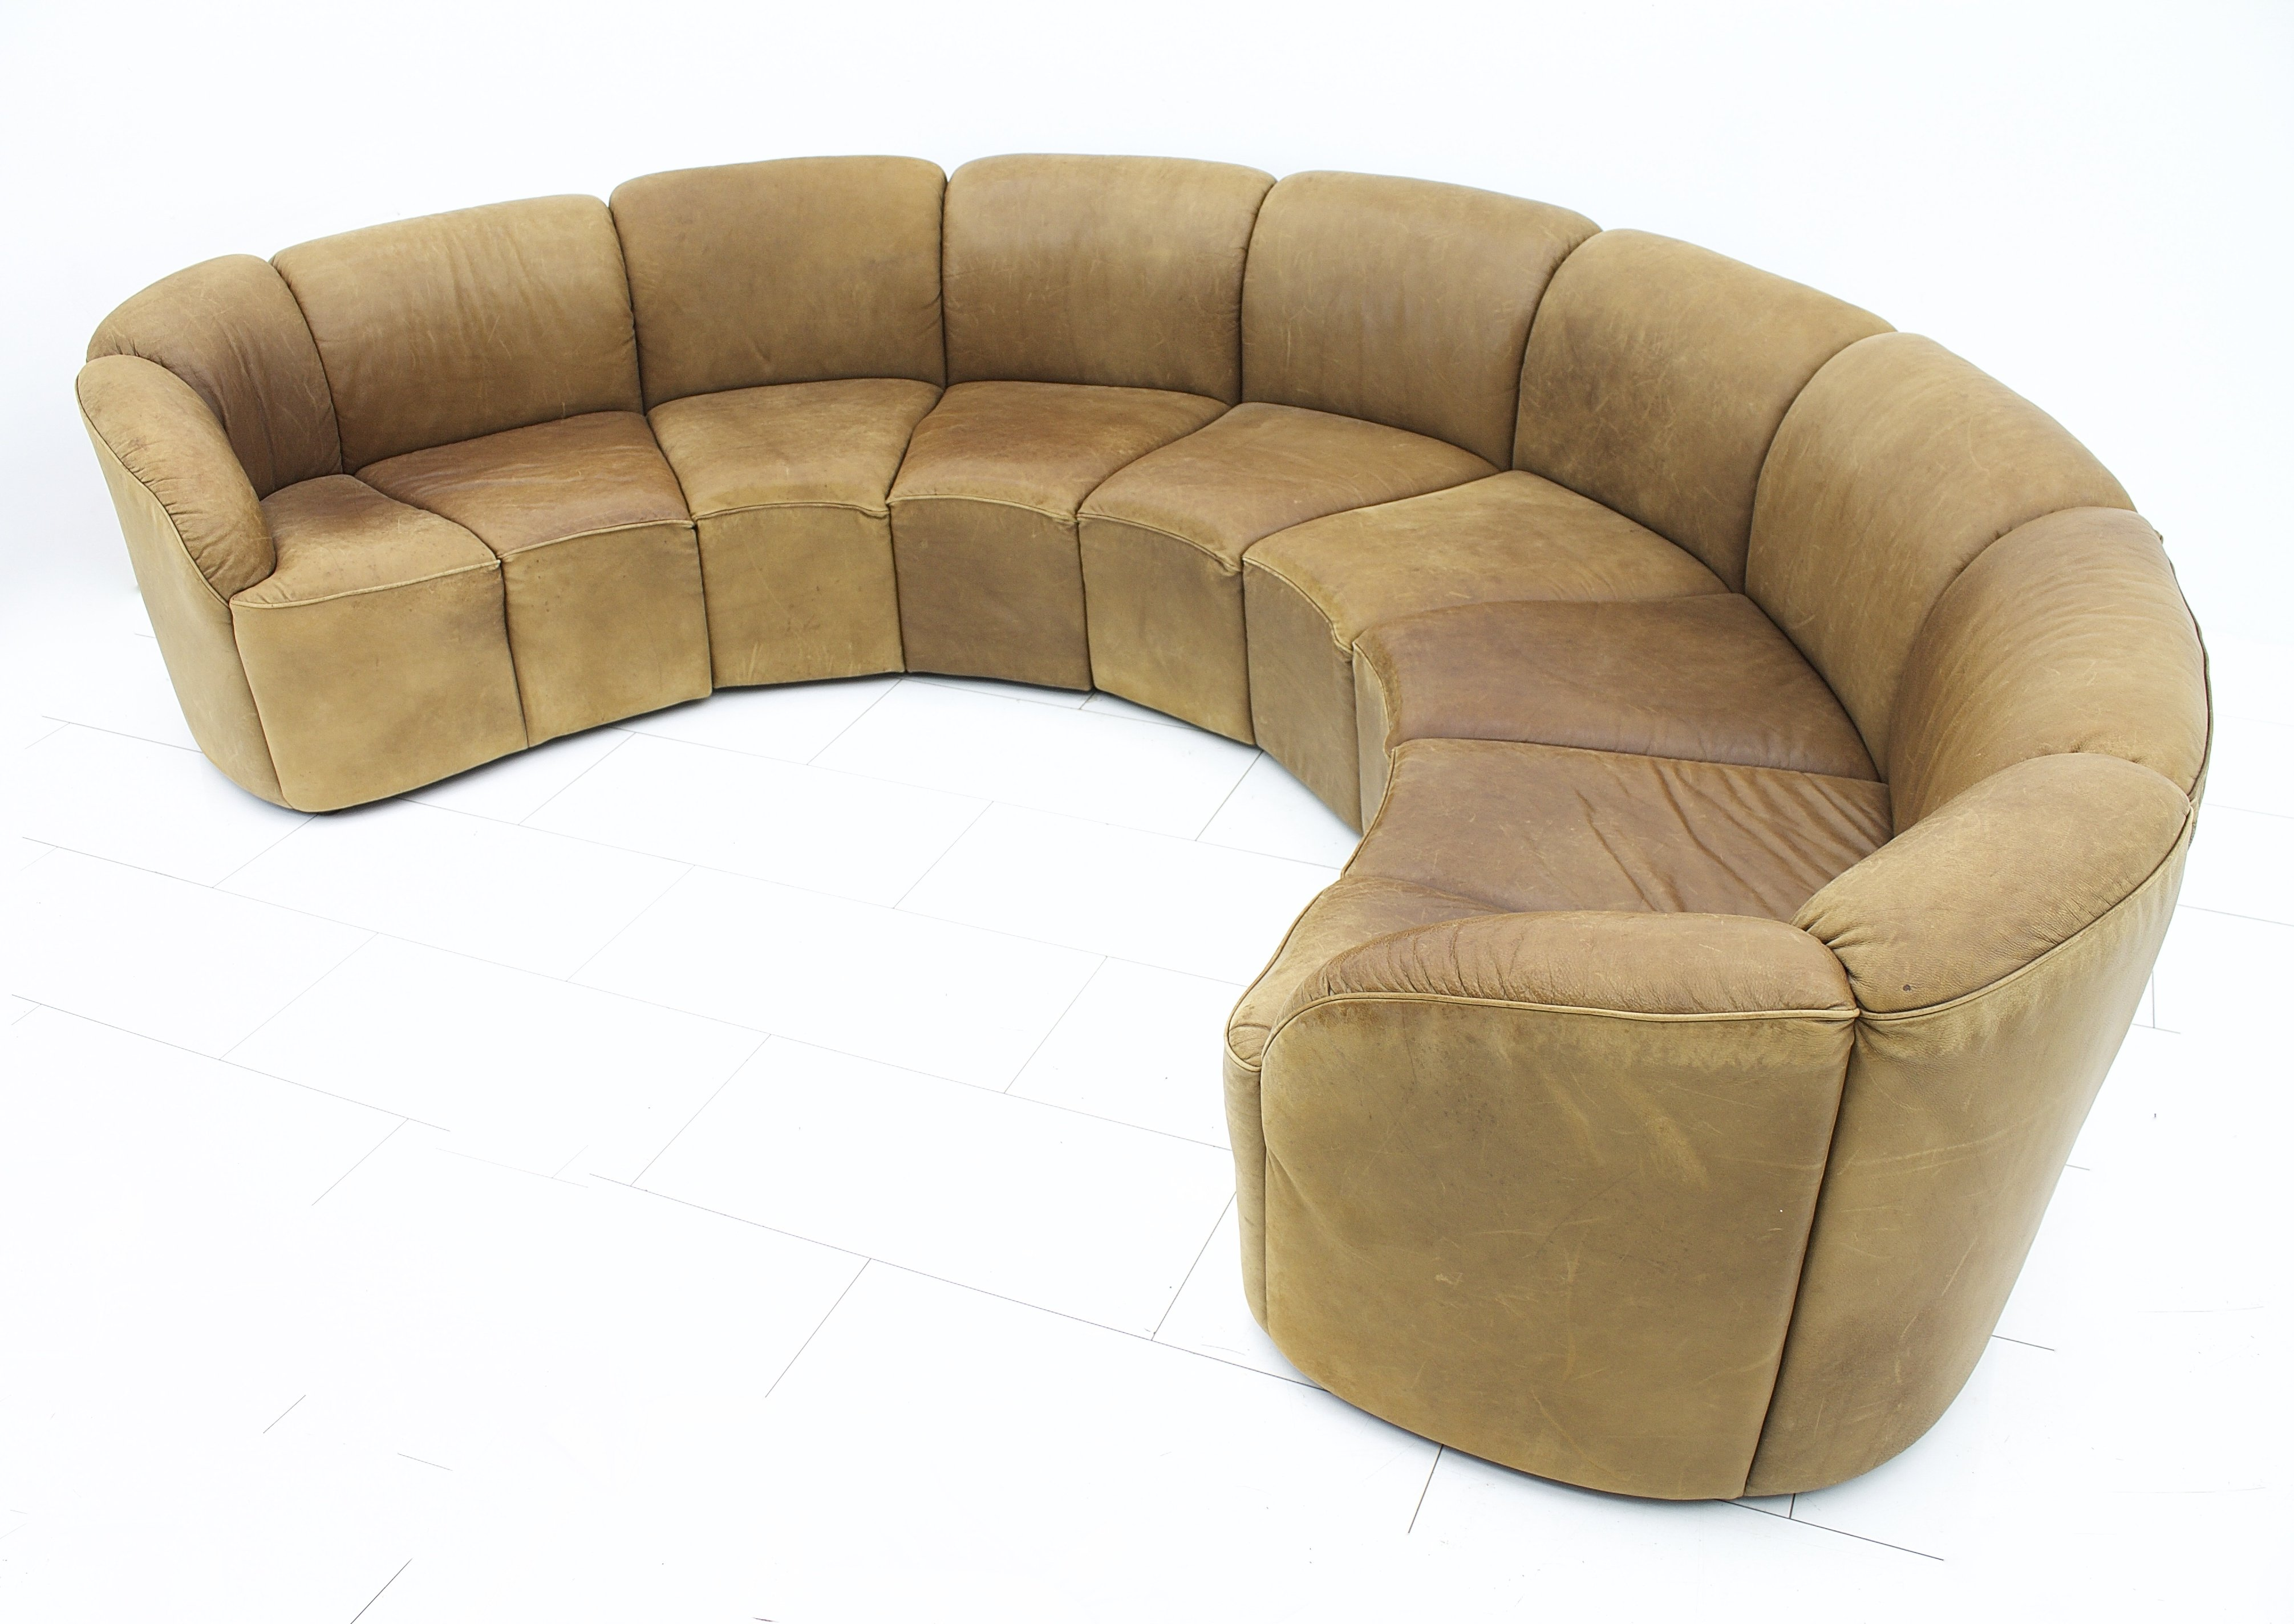 Half Round Leather Sofa By Walter Knoll Late 1960s